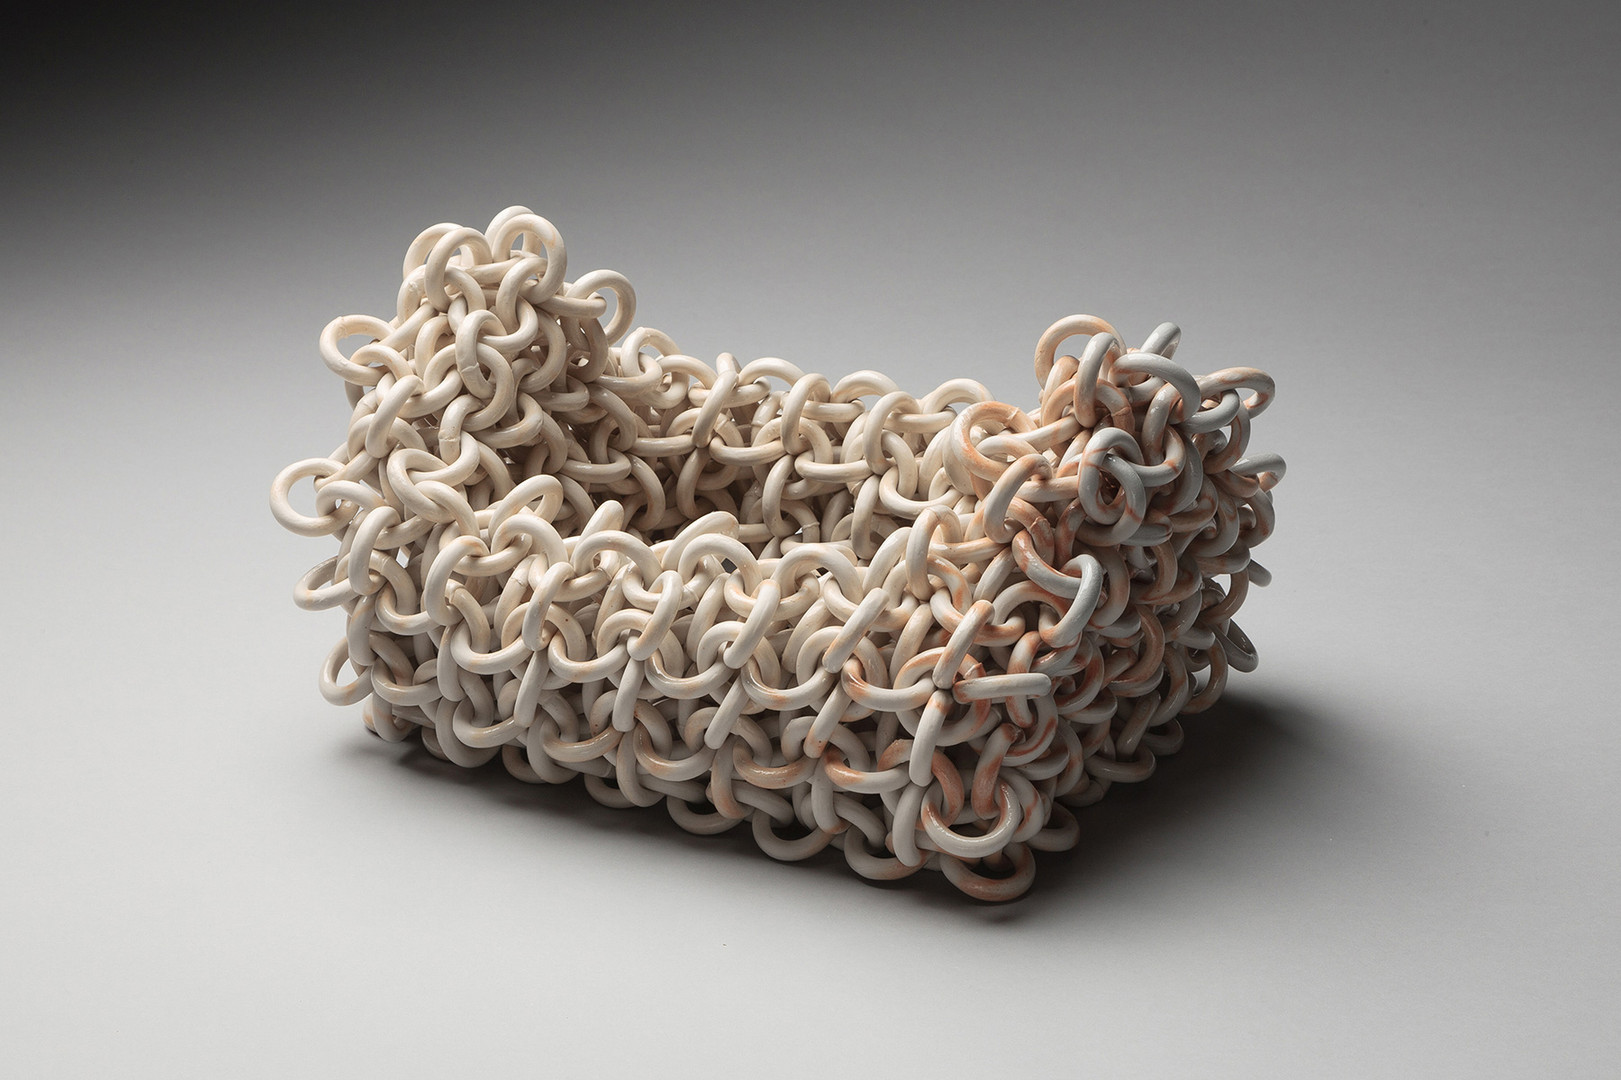 "Ruth Borgenicht ""Households, Gable"" 2014, salt-fired ceramic, 9 x 14 x 10 in."